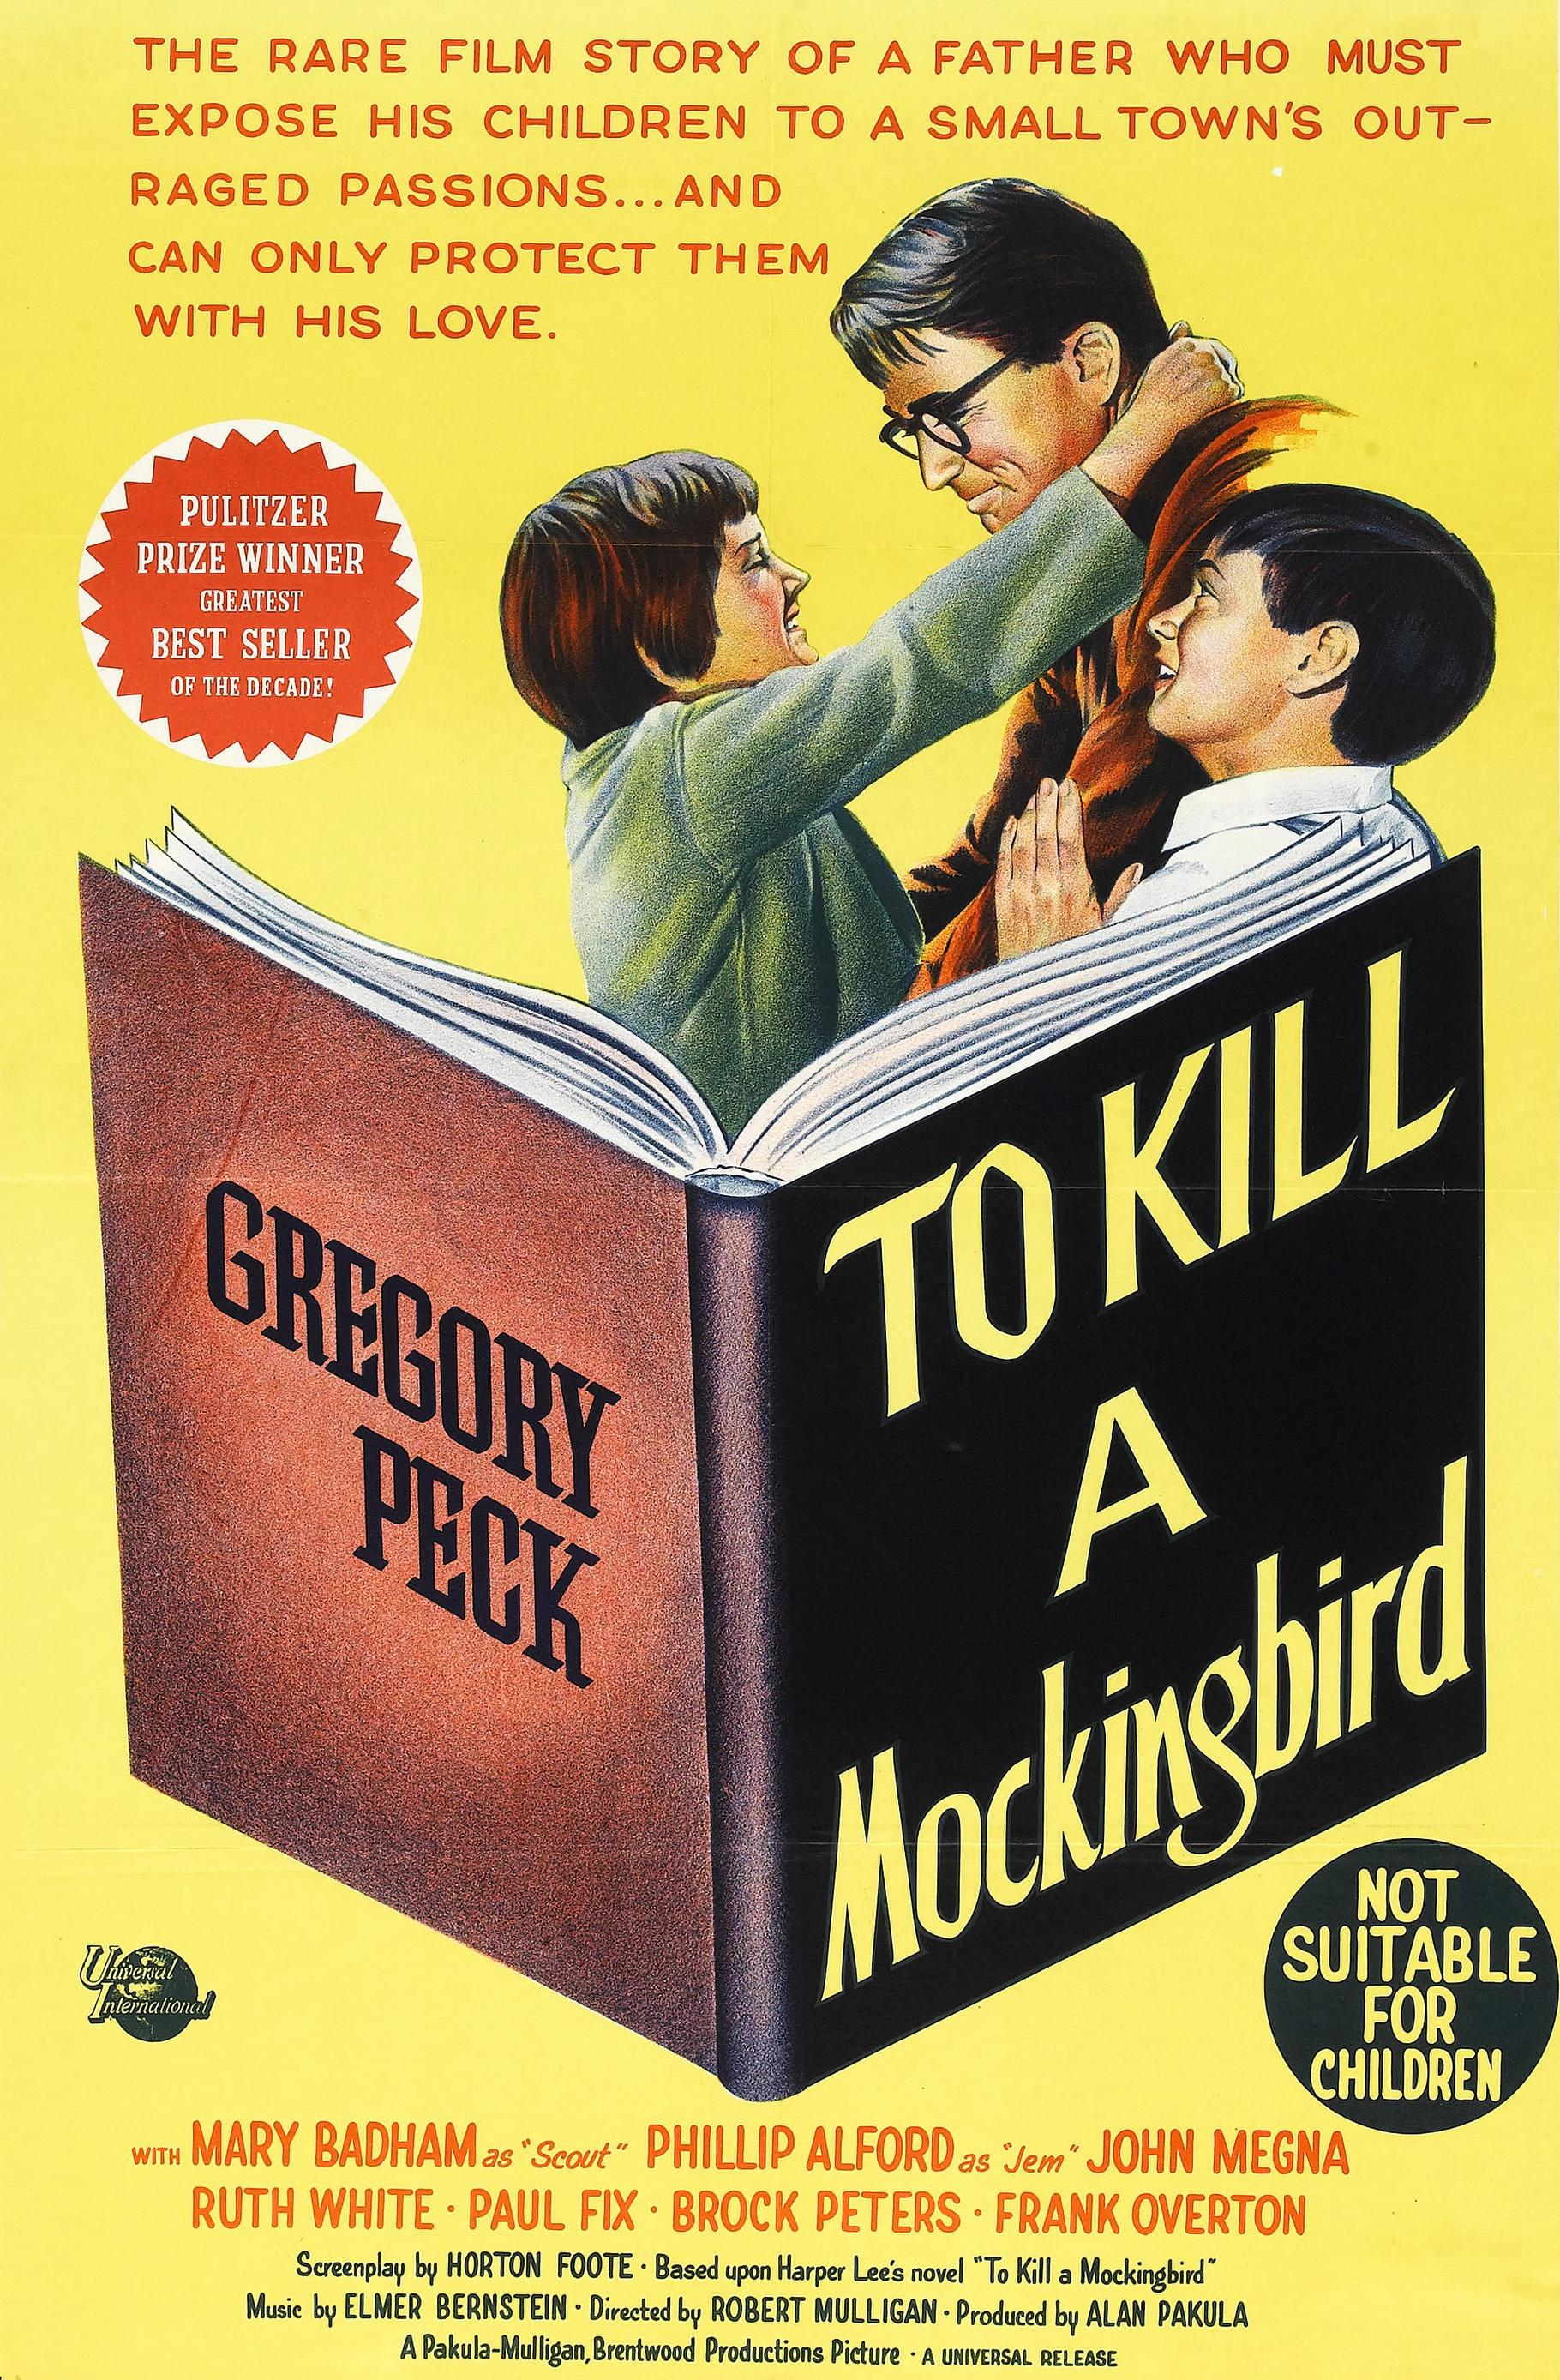 why is the book called to kill a mockingbird